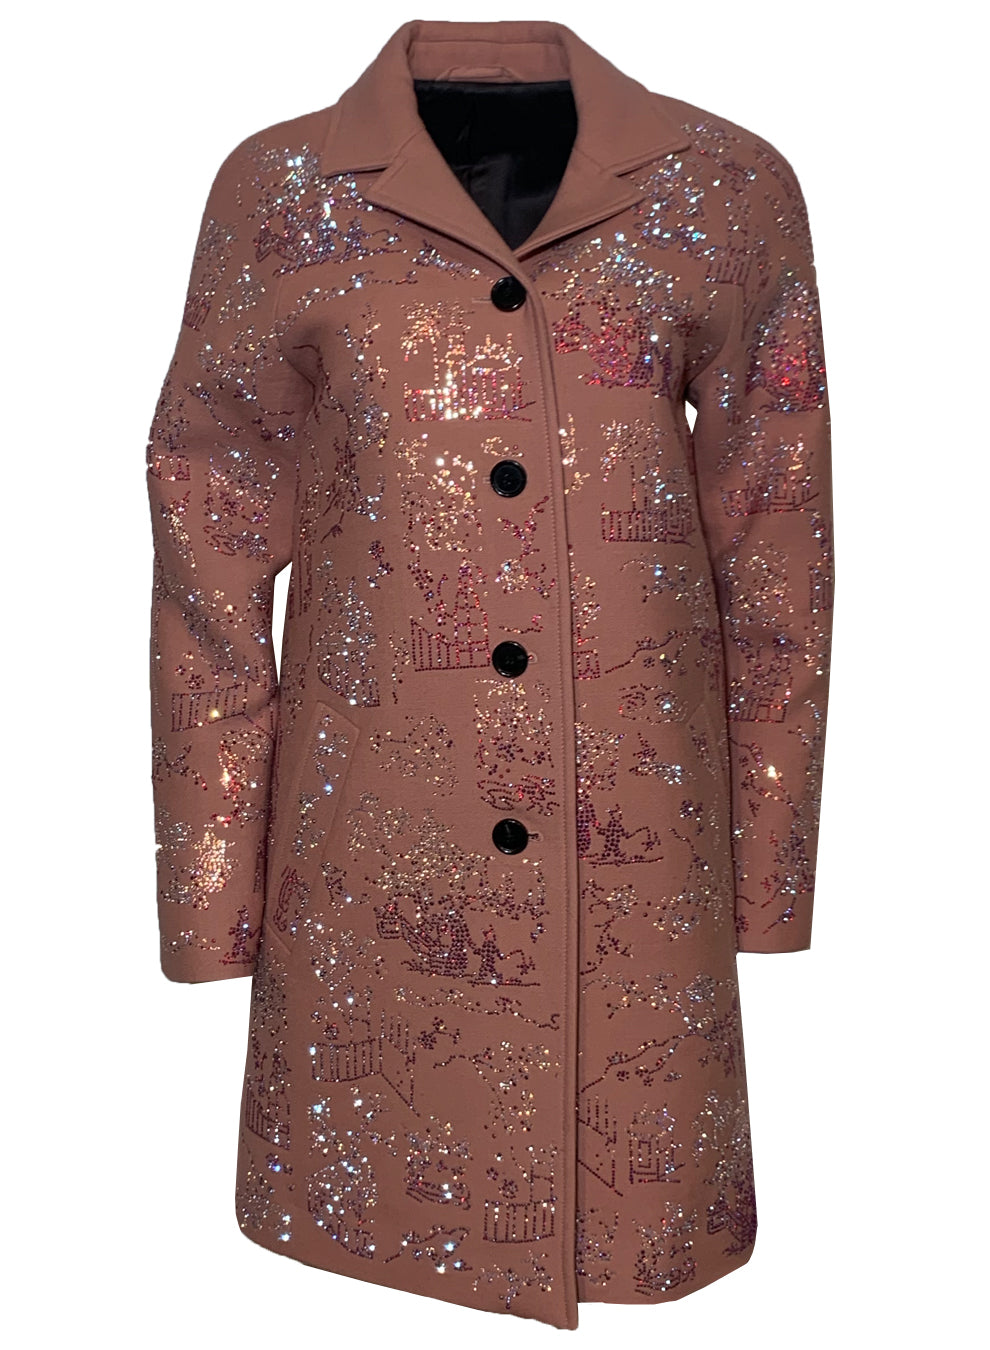 PINK 'CHINOISERIE' VINTAGE COAT - One of a Kinds - Libertine